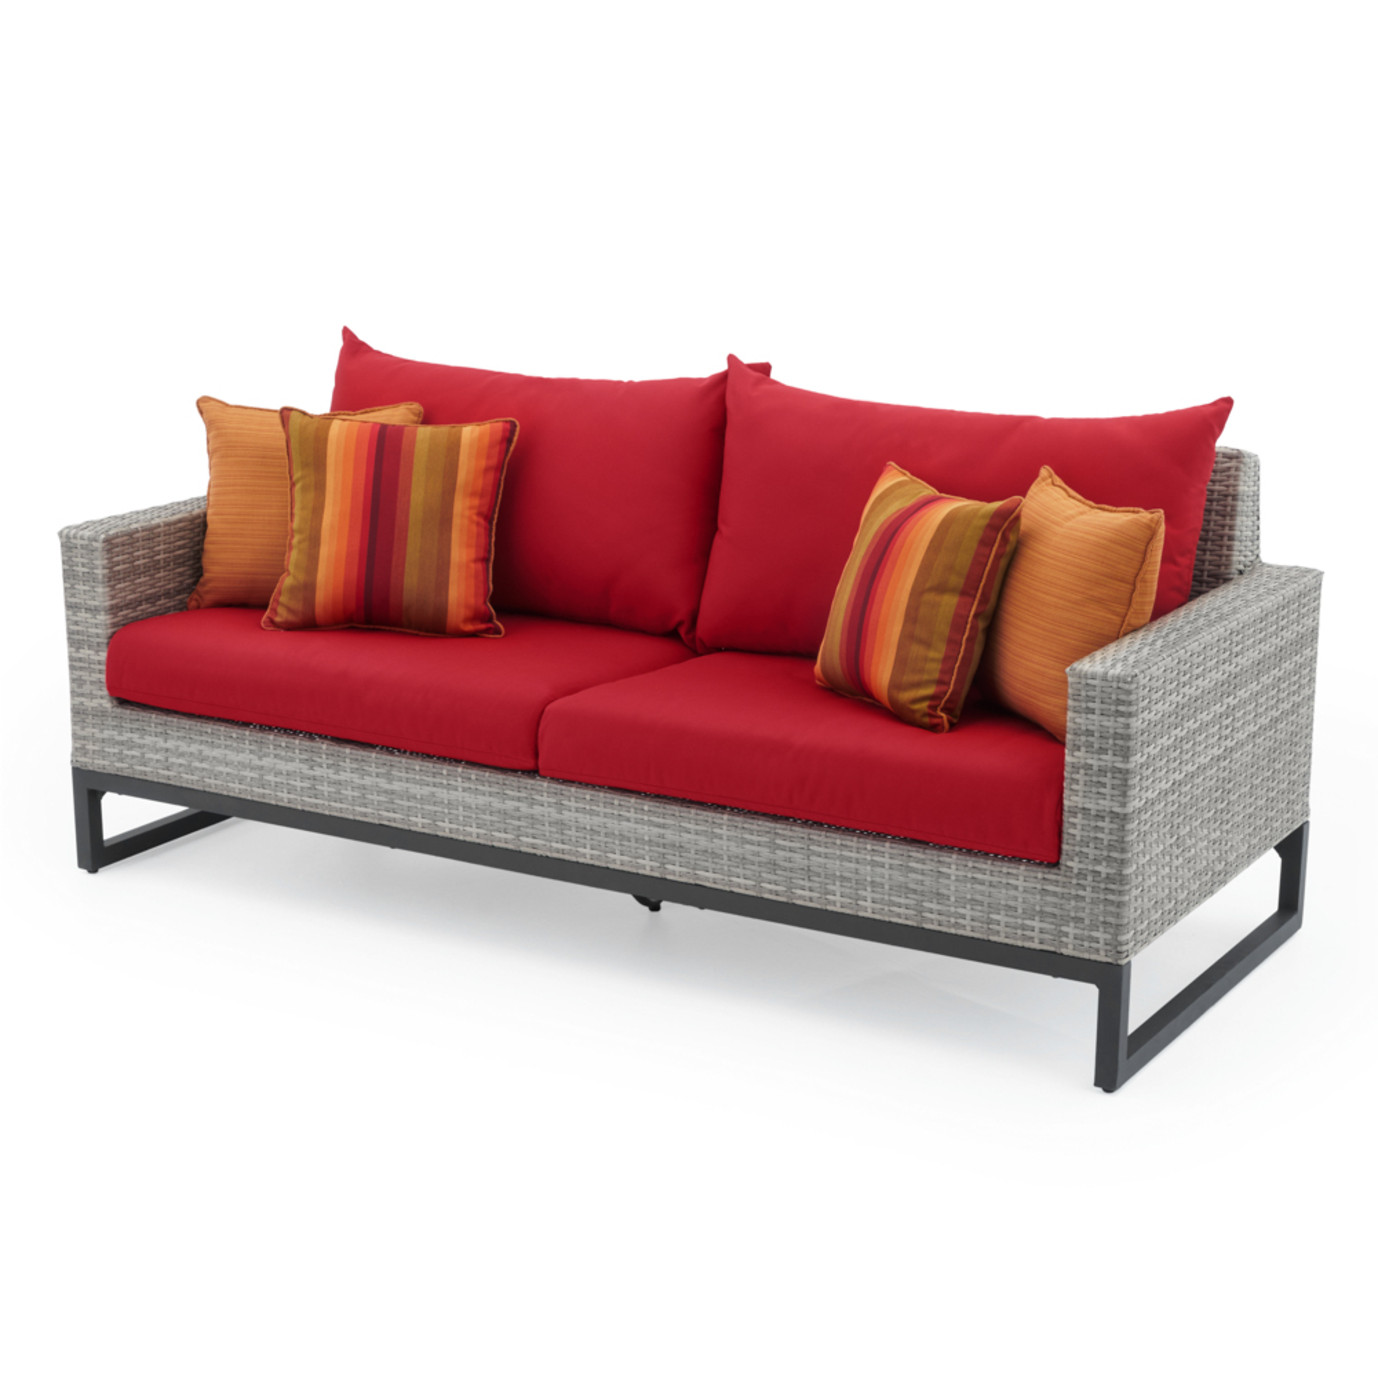 Milo™ Gray 78in Sofa - Sunset Red